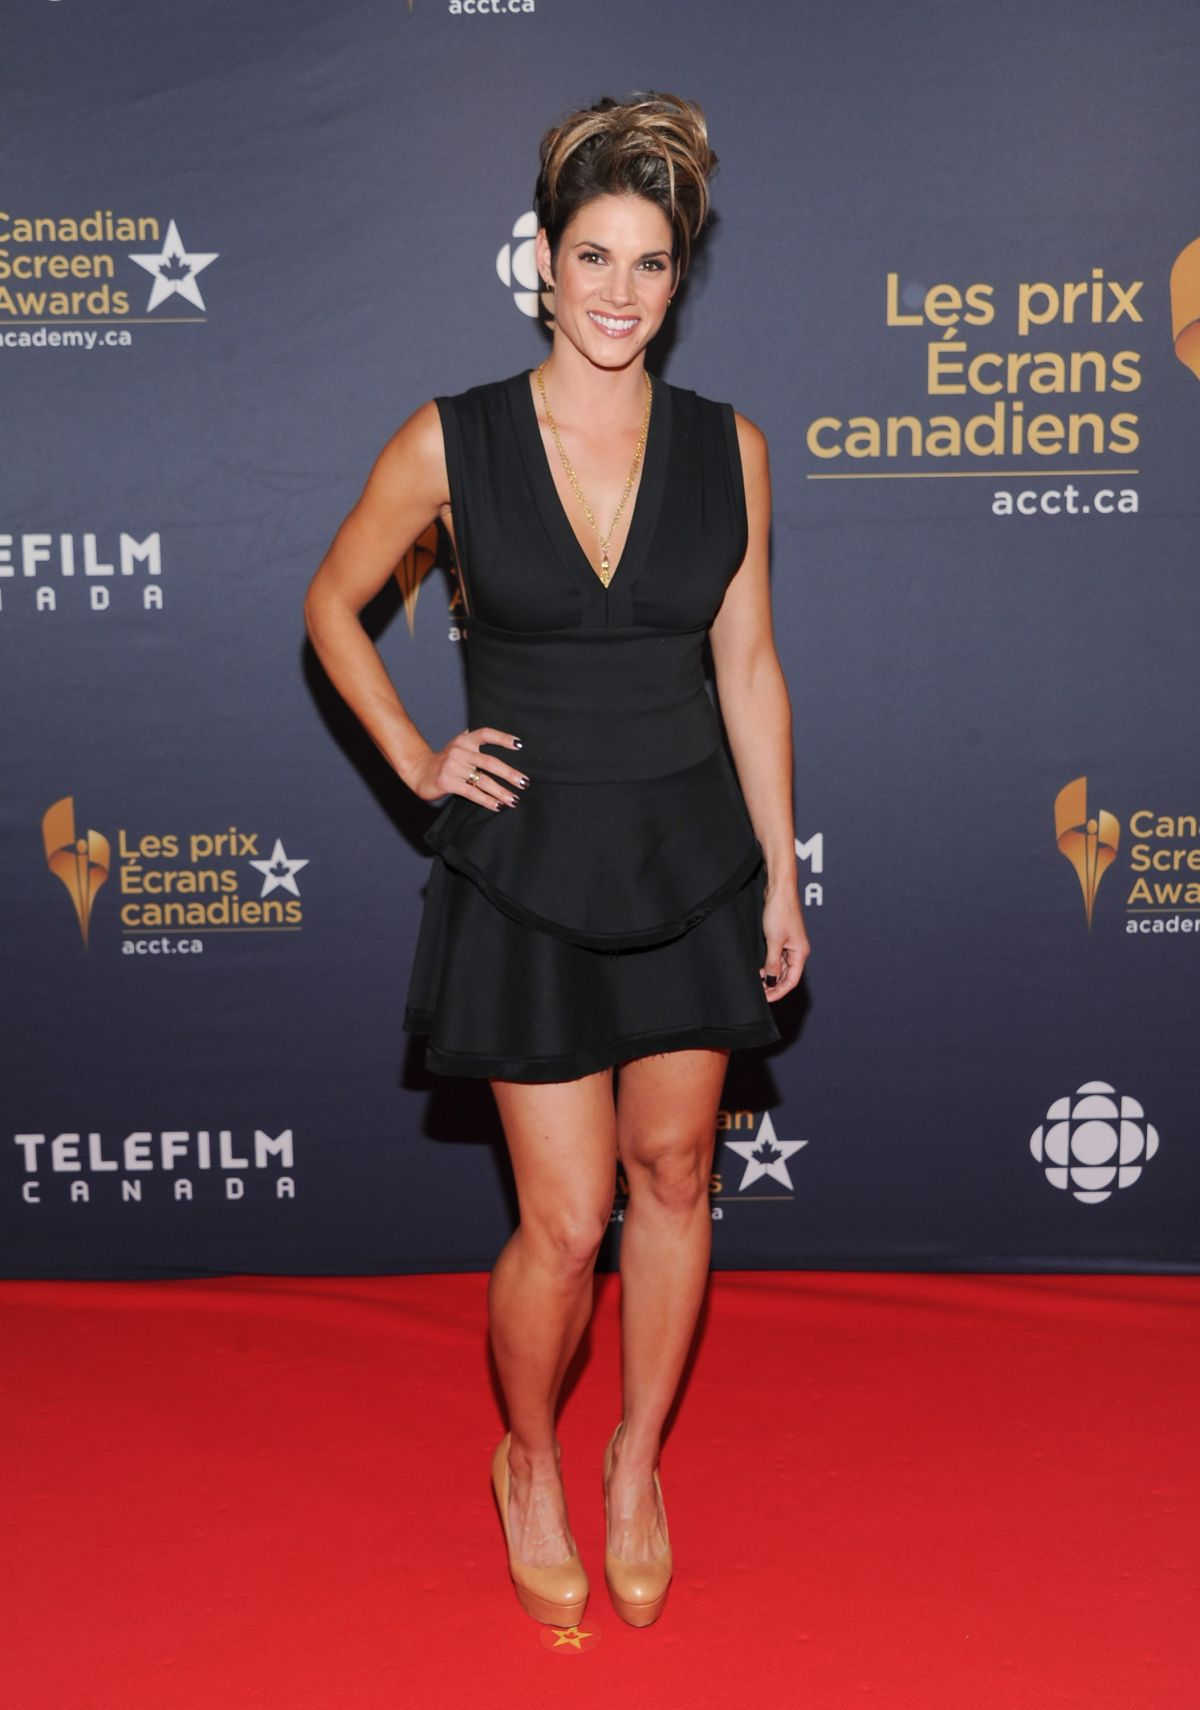 MISSY PEREGRYM at 2016 Canadian Screen Awards in Toronto 03/13/2016